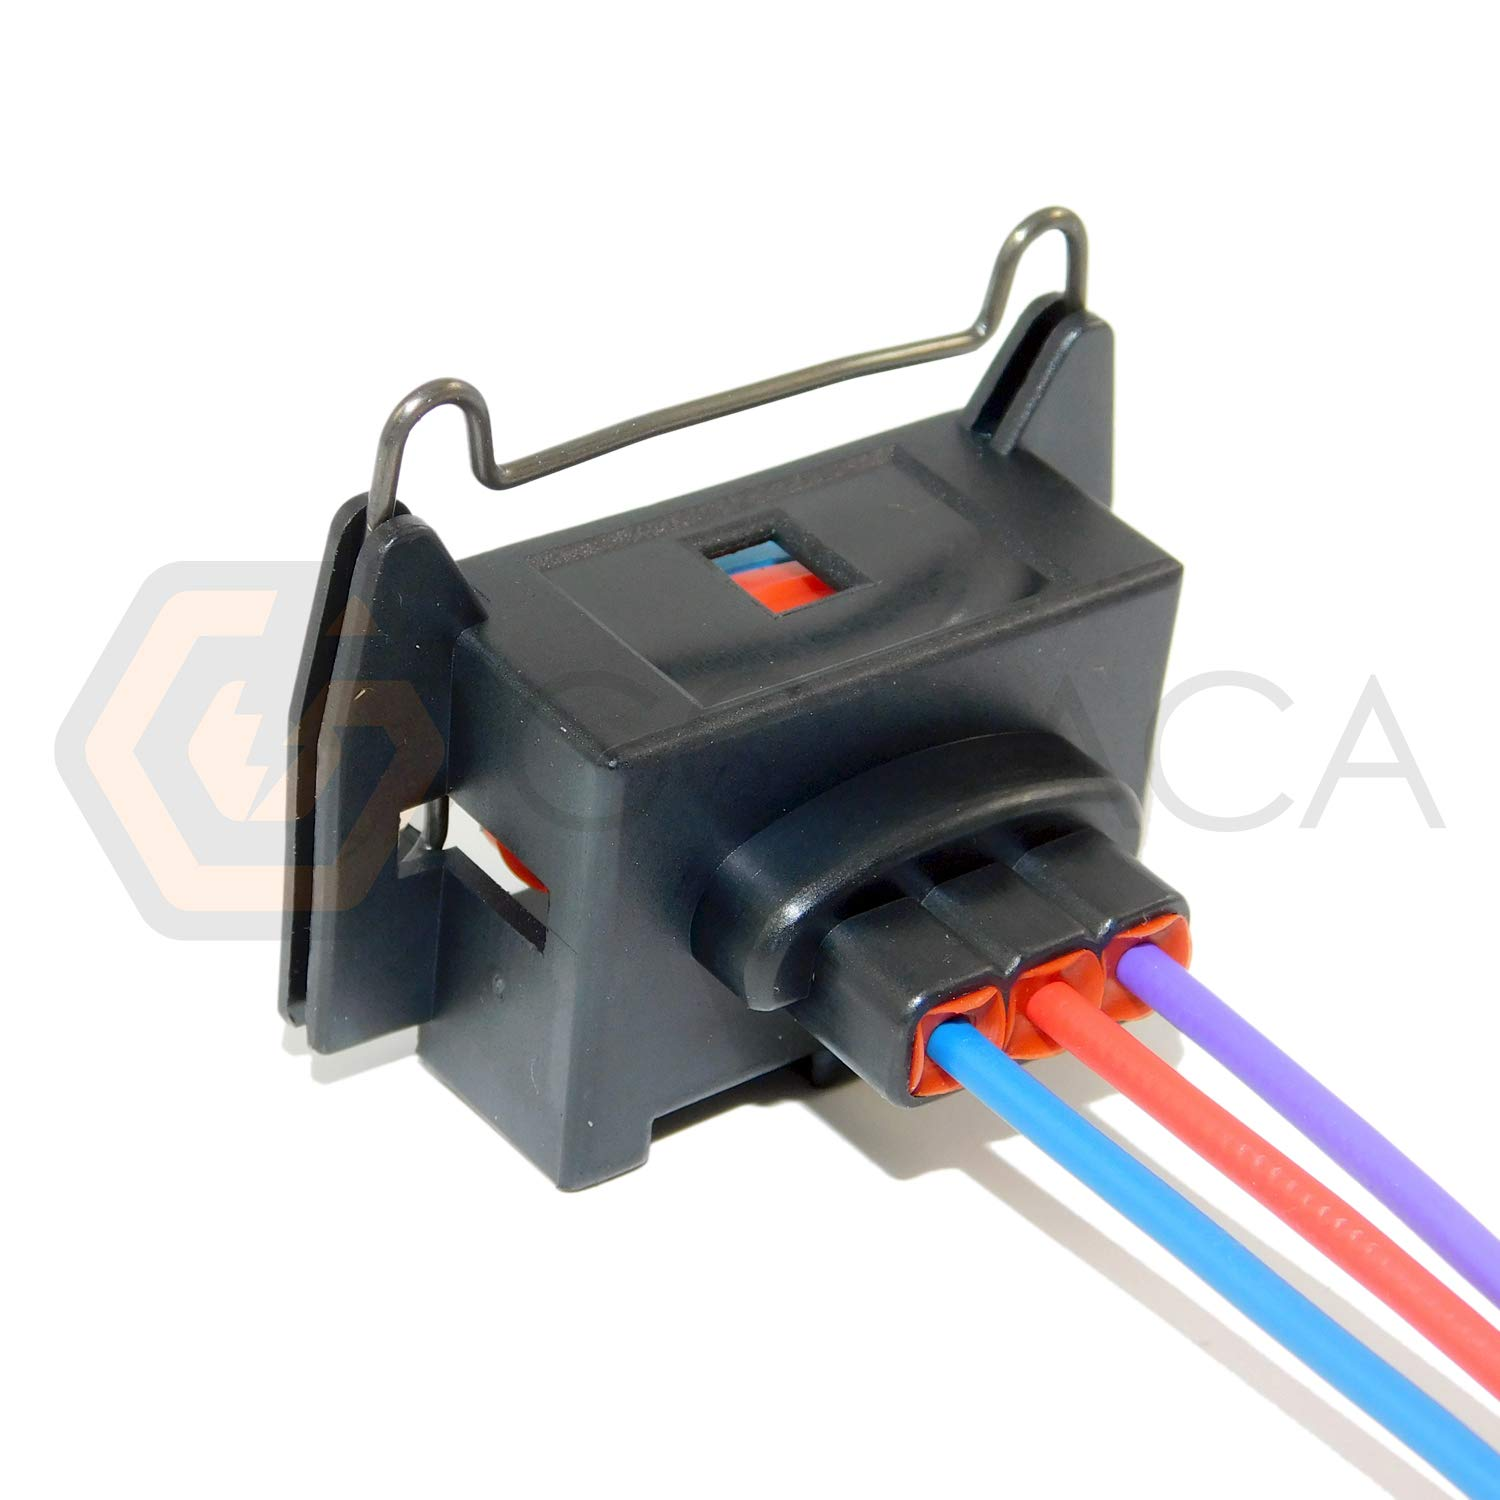 1x Connector 3 Way Pin For Ignition Coil Ford Mazda 2002 Escape Wiring Diagram Motorcycle And Car Wpt 517 Automotive